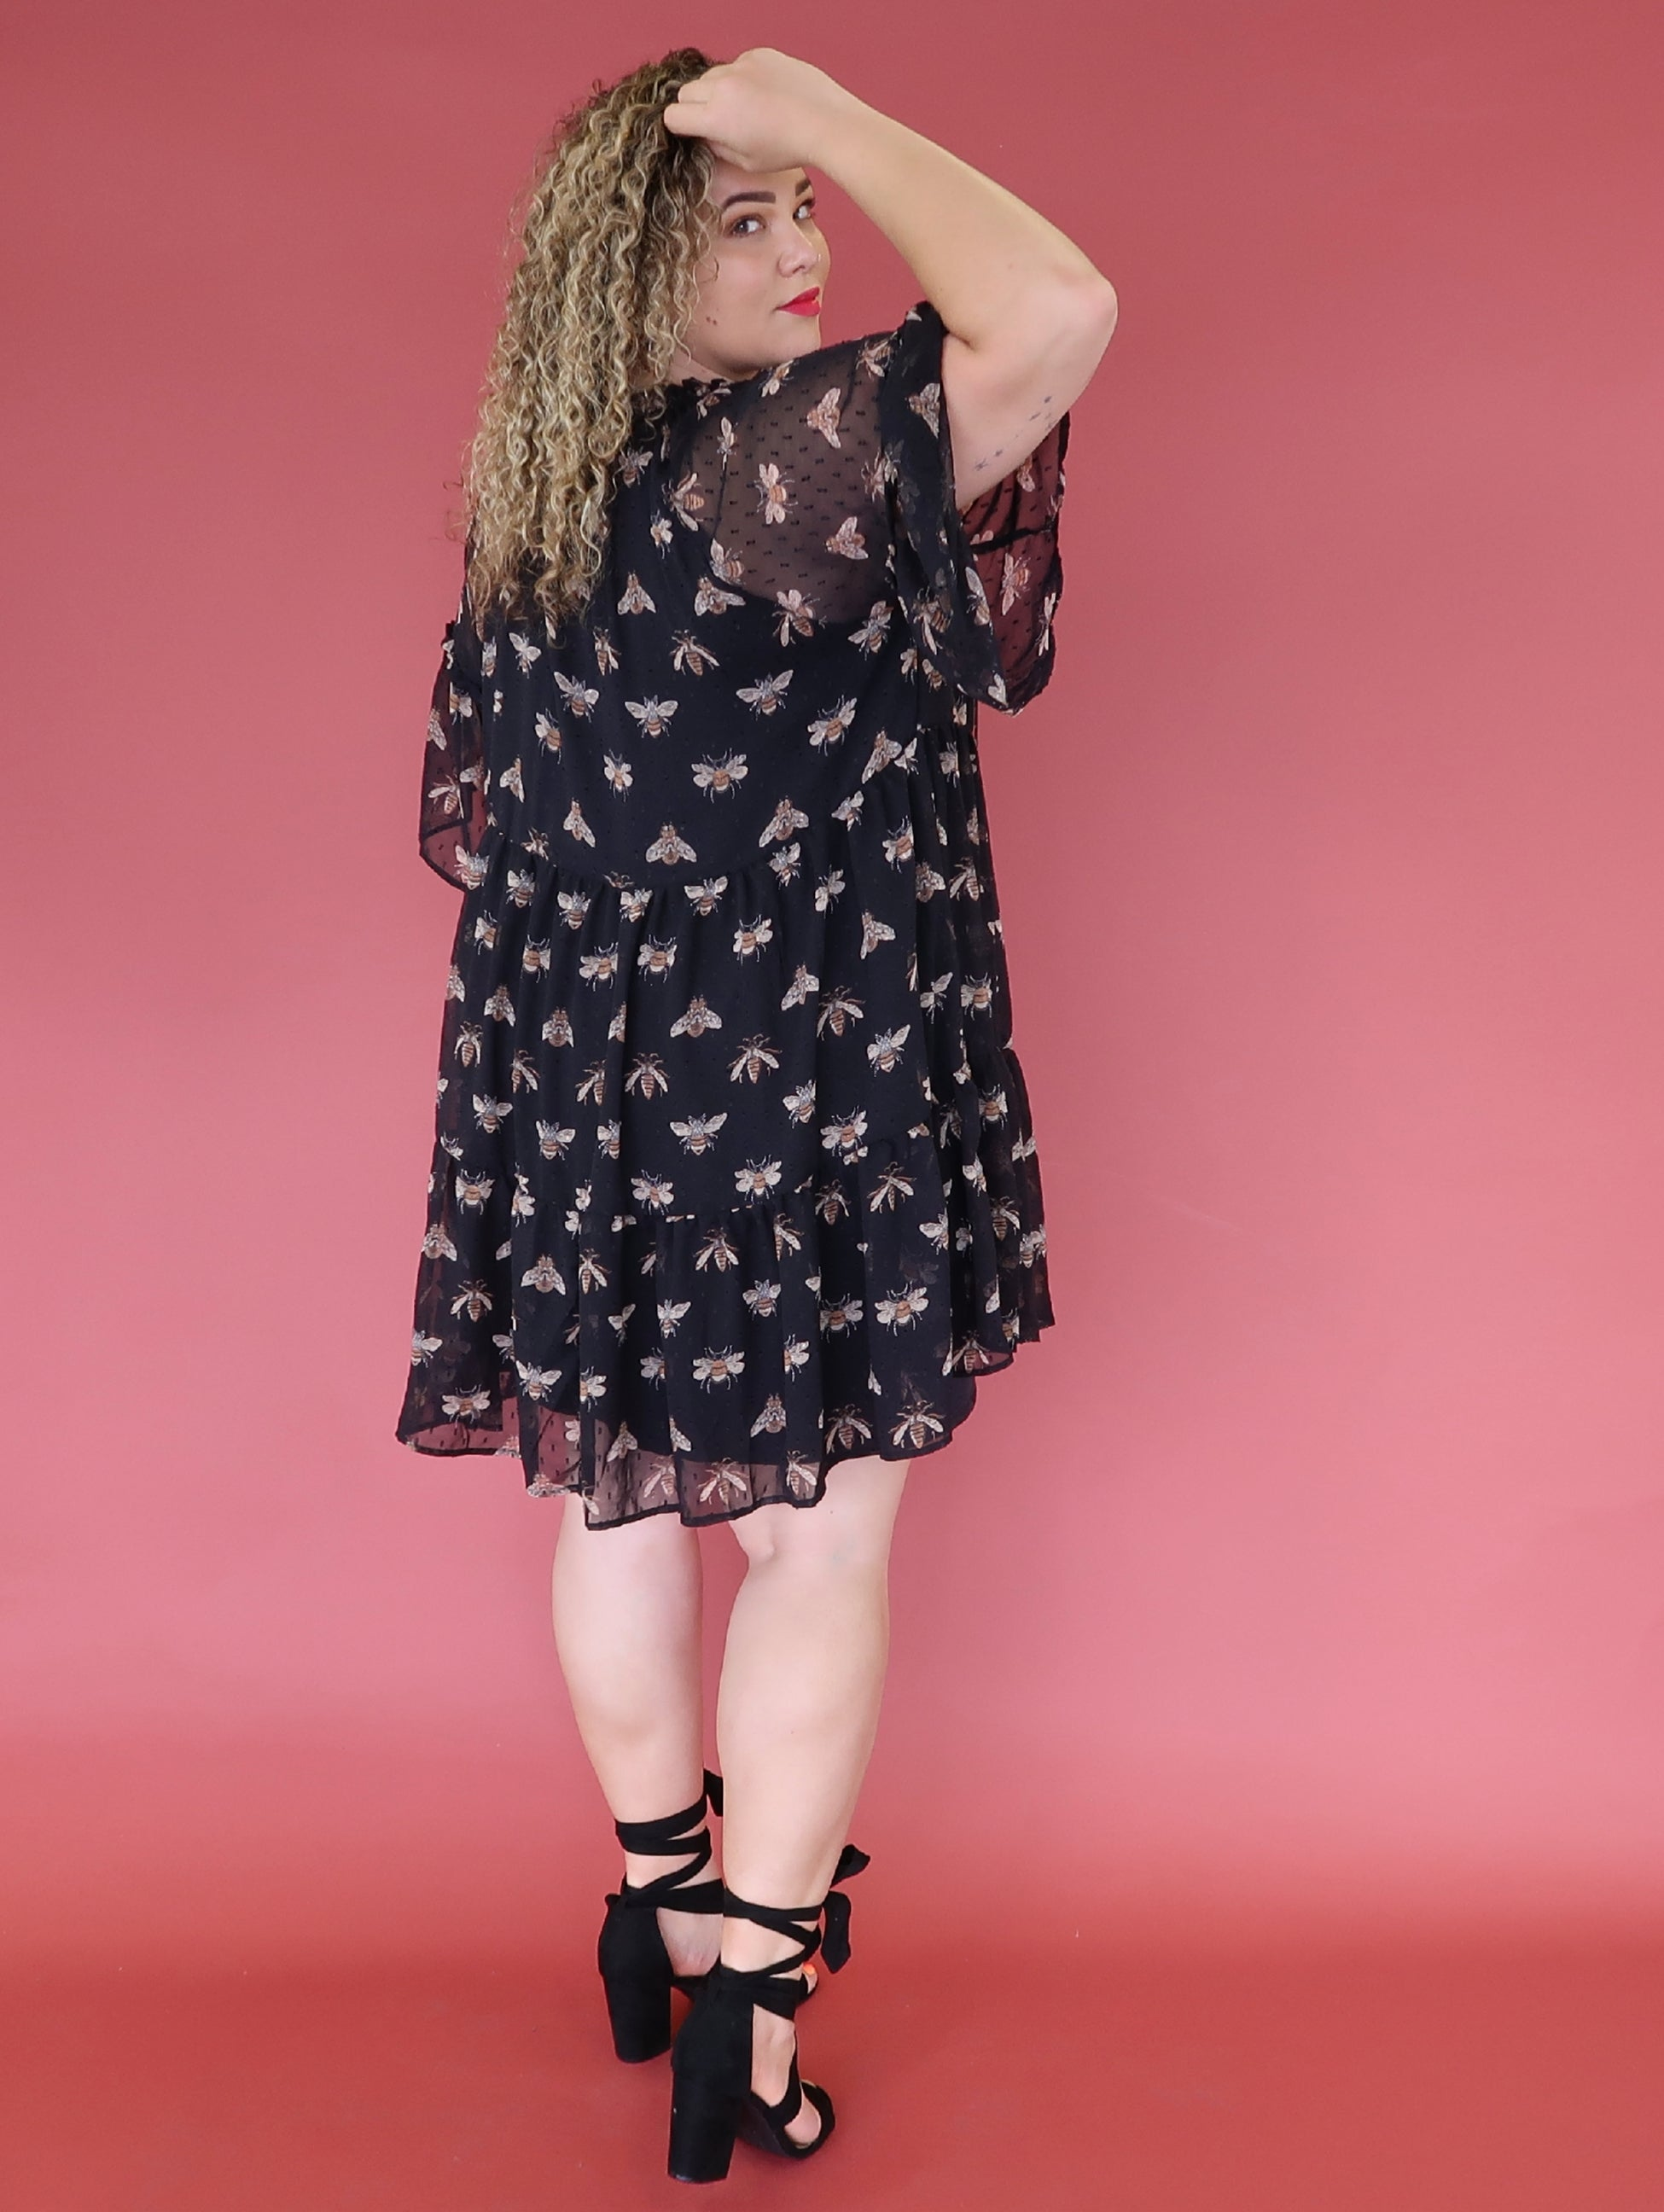 Tiny Dancer Dress - Queen Bee